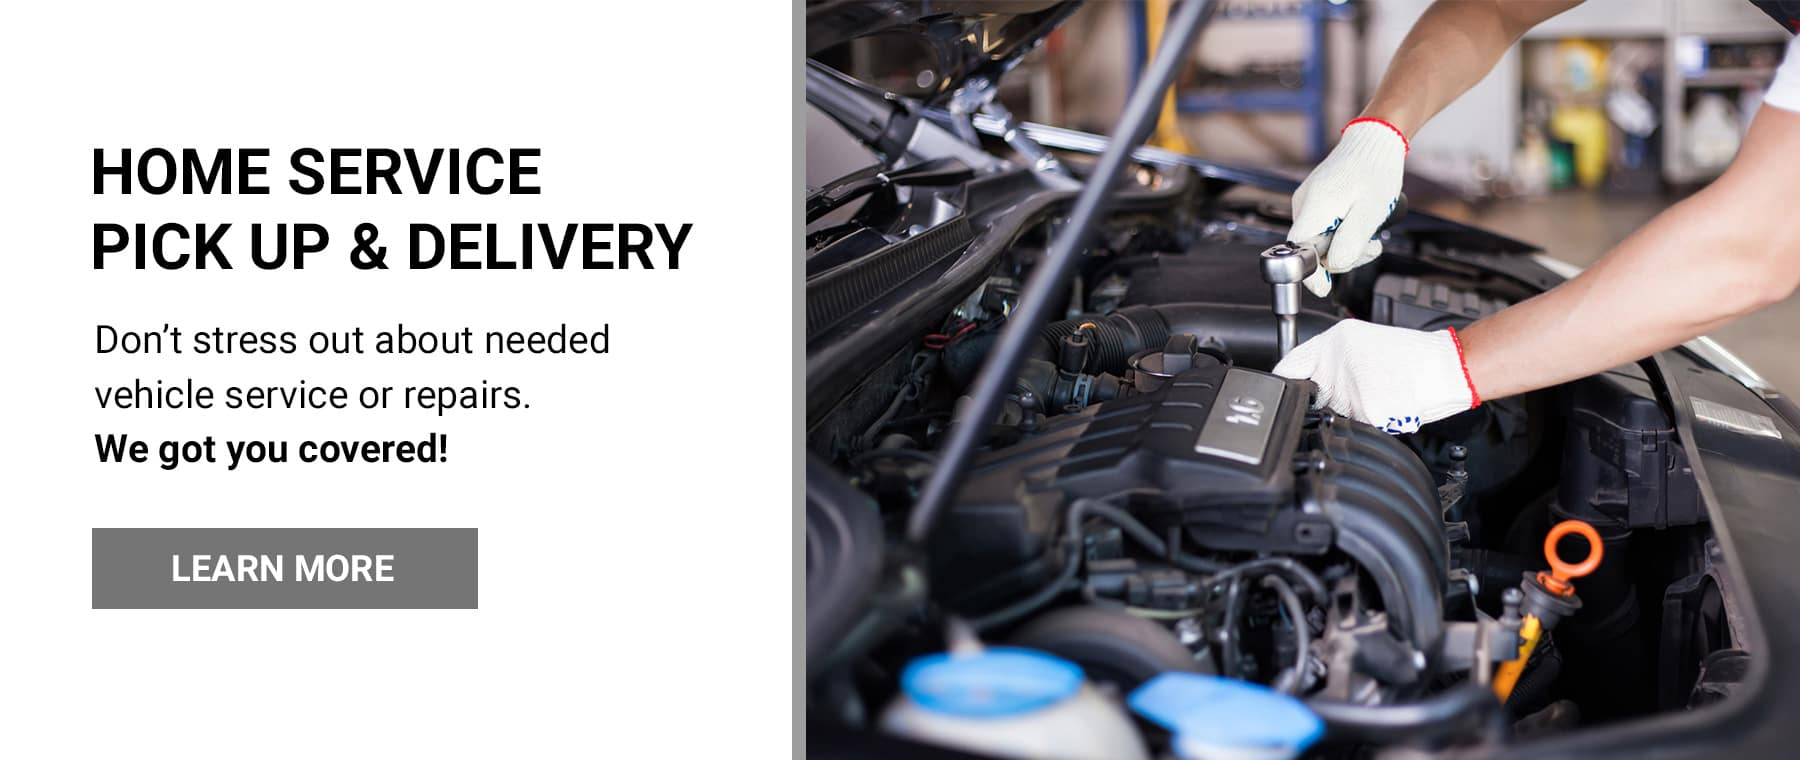 Service Pick Up and Delivery